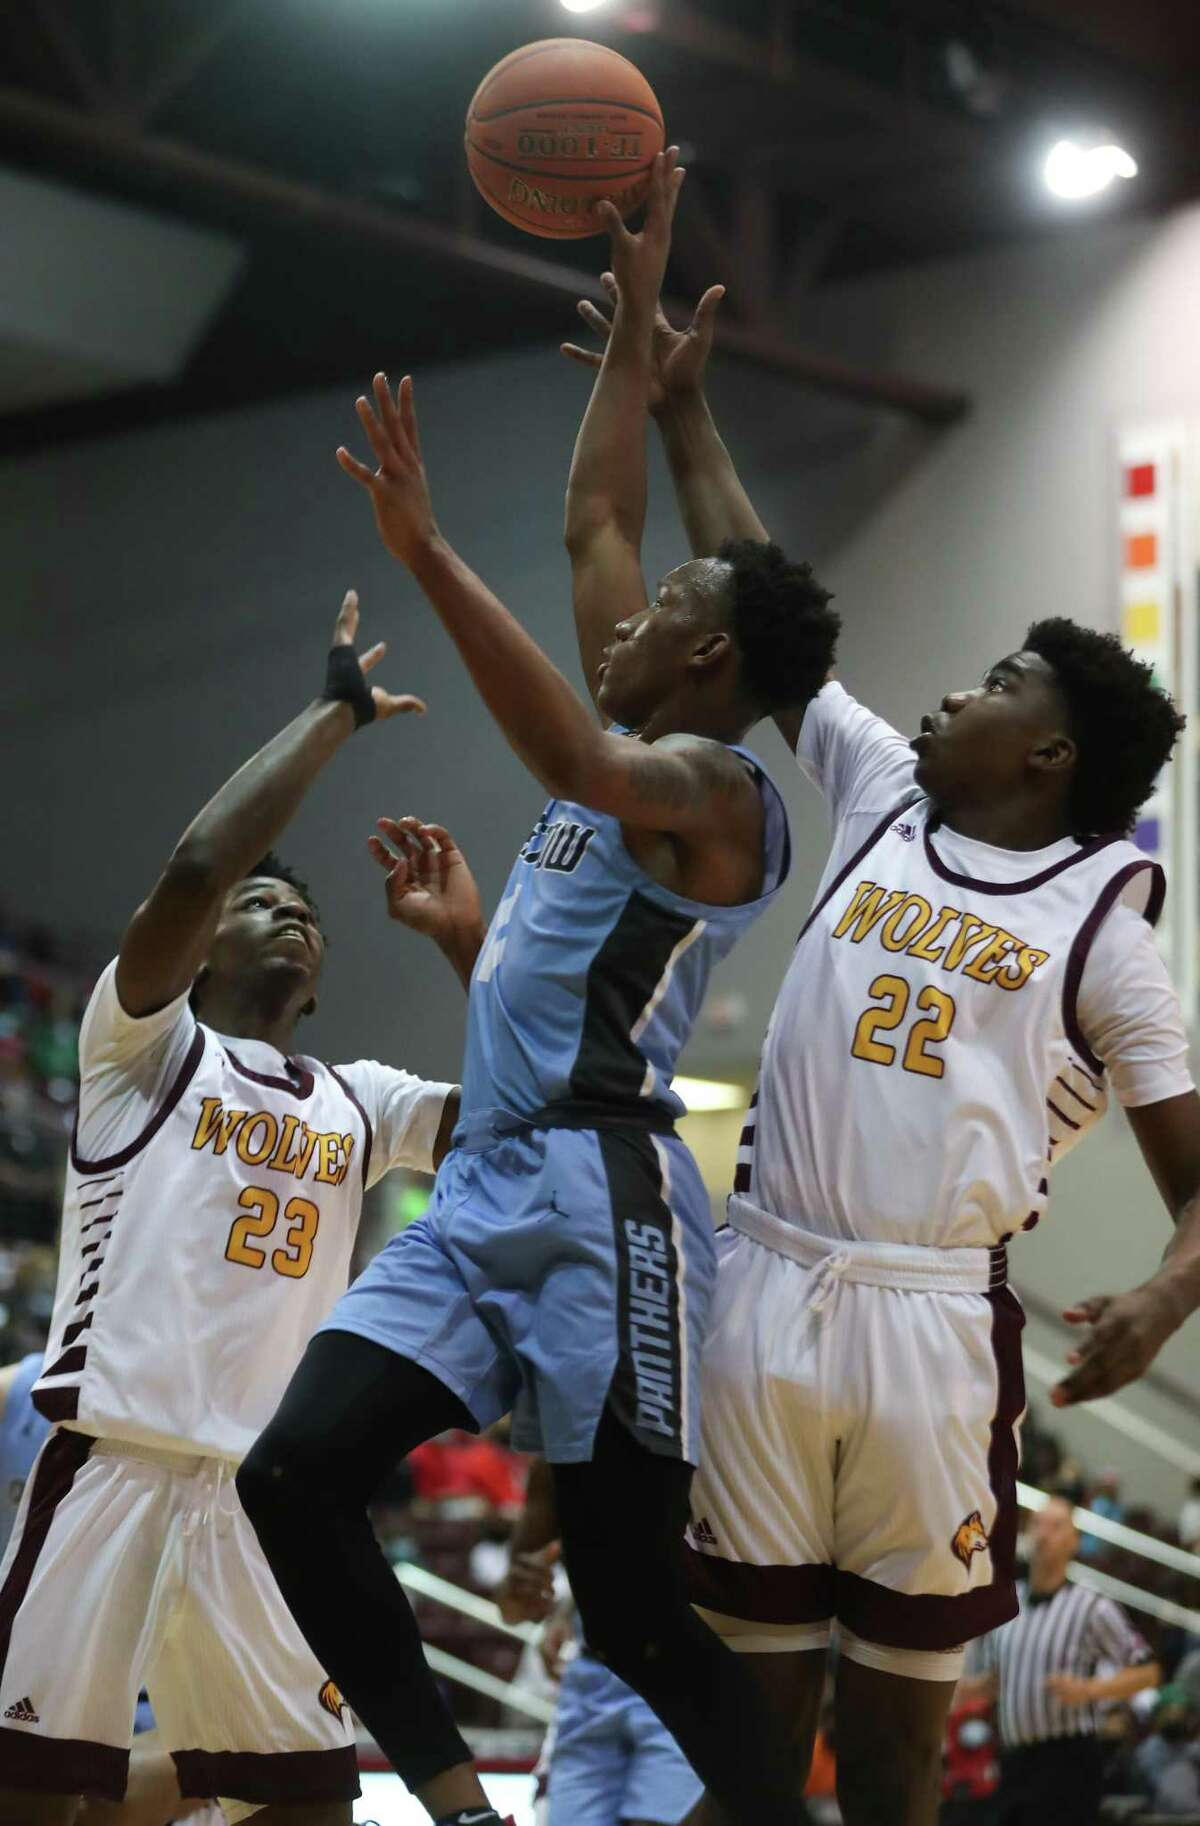 Katy Paetow guard Trevor Frank goes up for a shot between Beaumont United's Terrance Arceneaux (23) and Clarence Payia (22) during the first half of the boys Class 5A Region III championship basketball game at the Campbell Center Friday, March 5, 2021 in Houston.